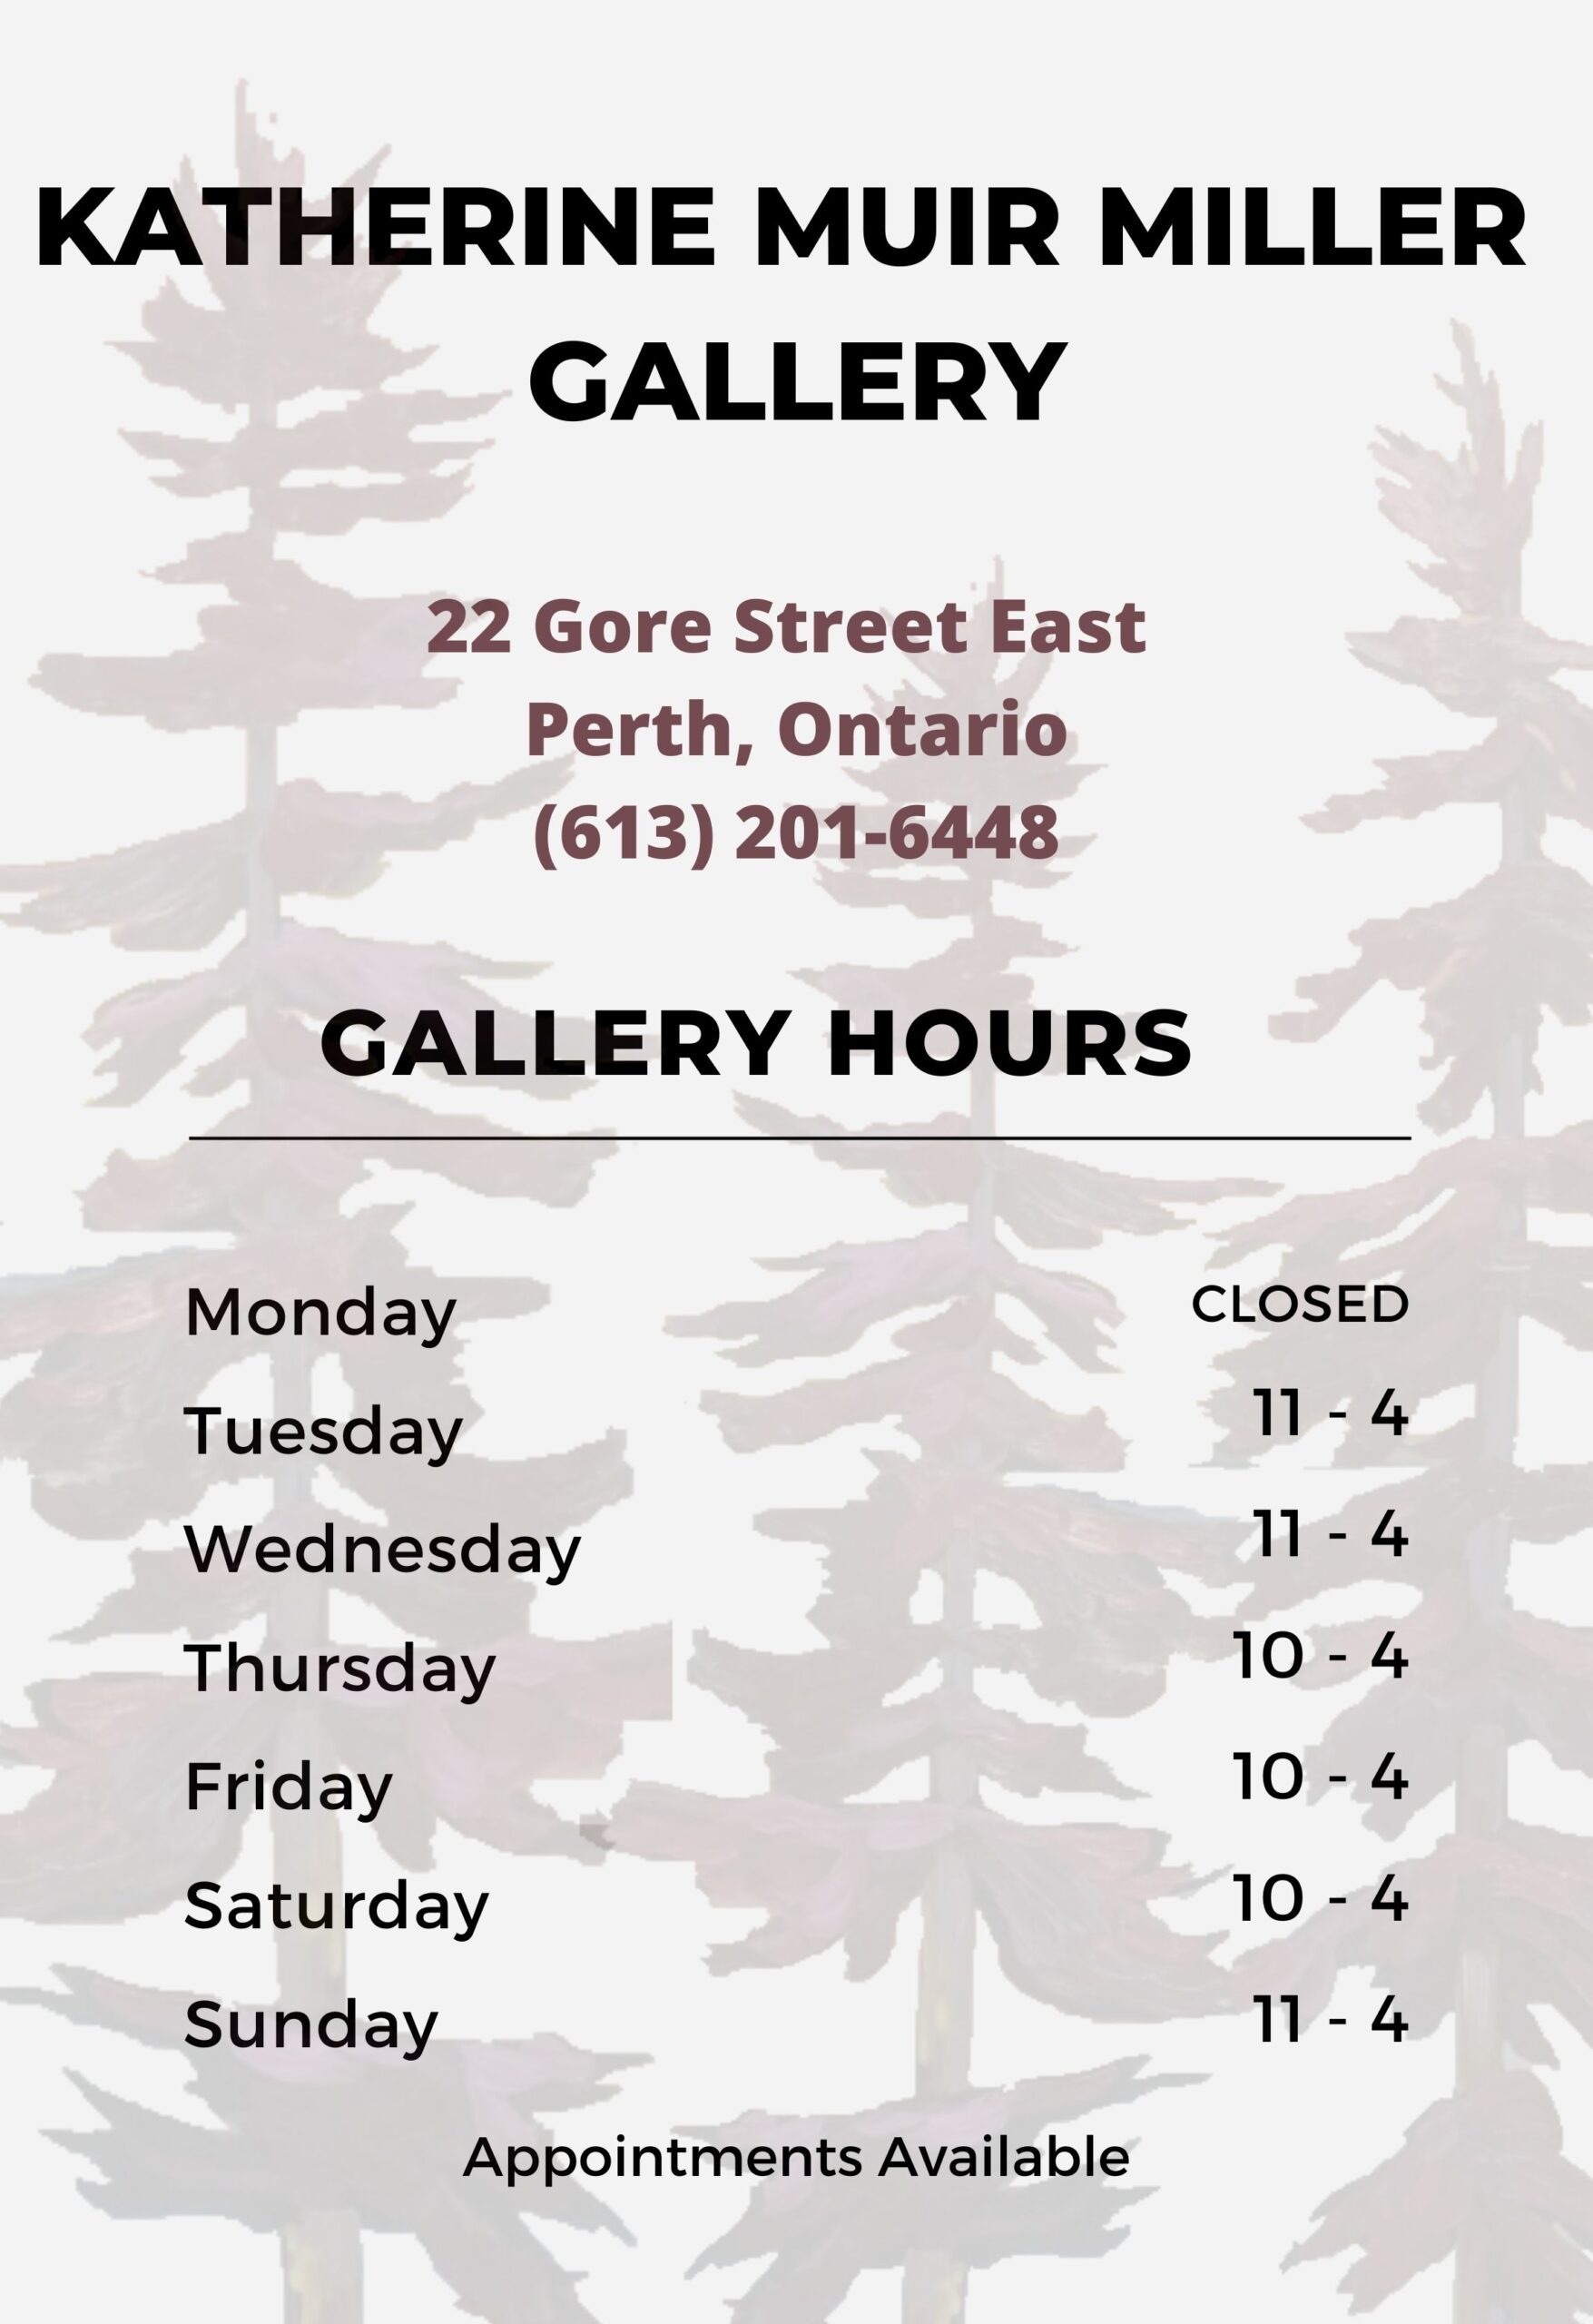 Hours of Gallery